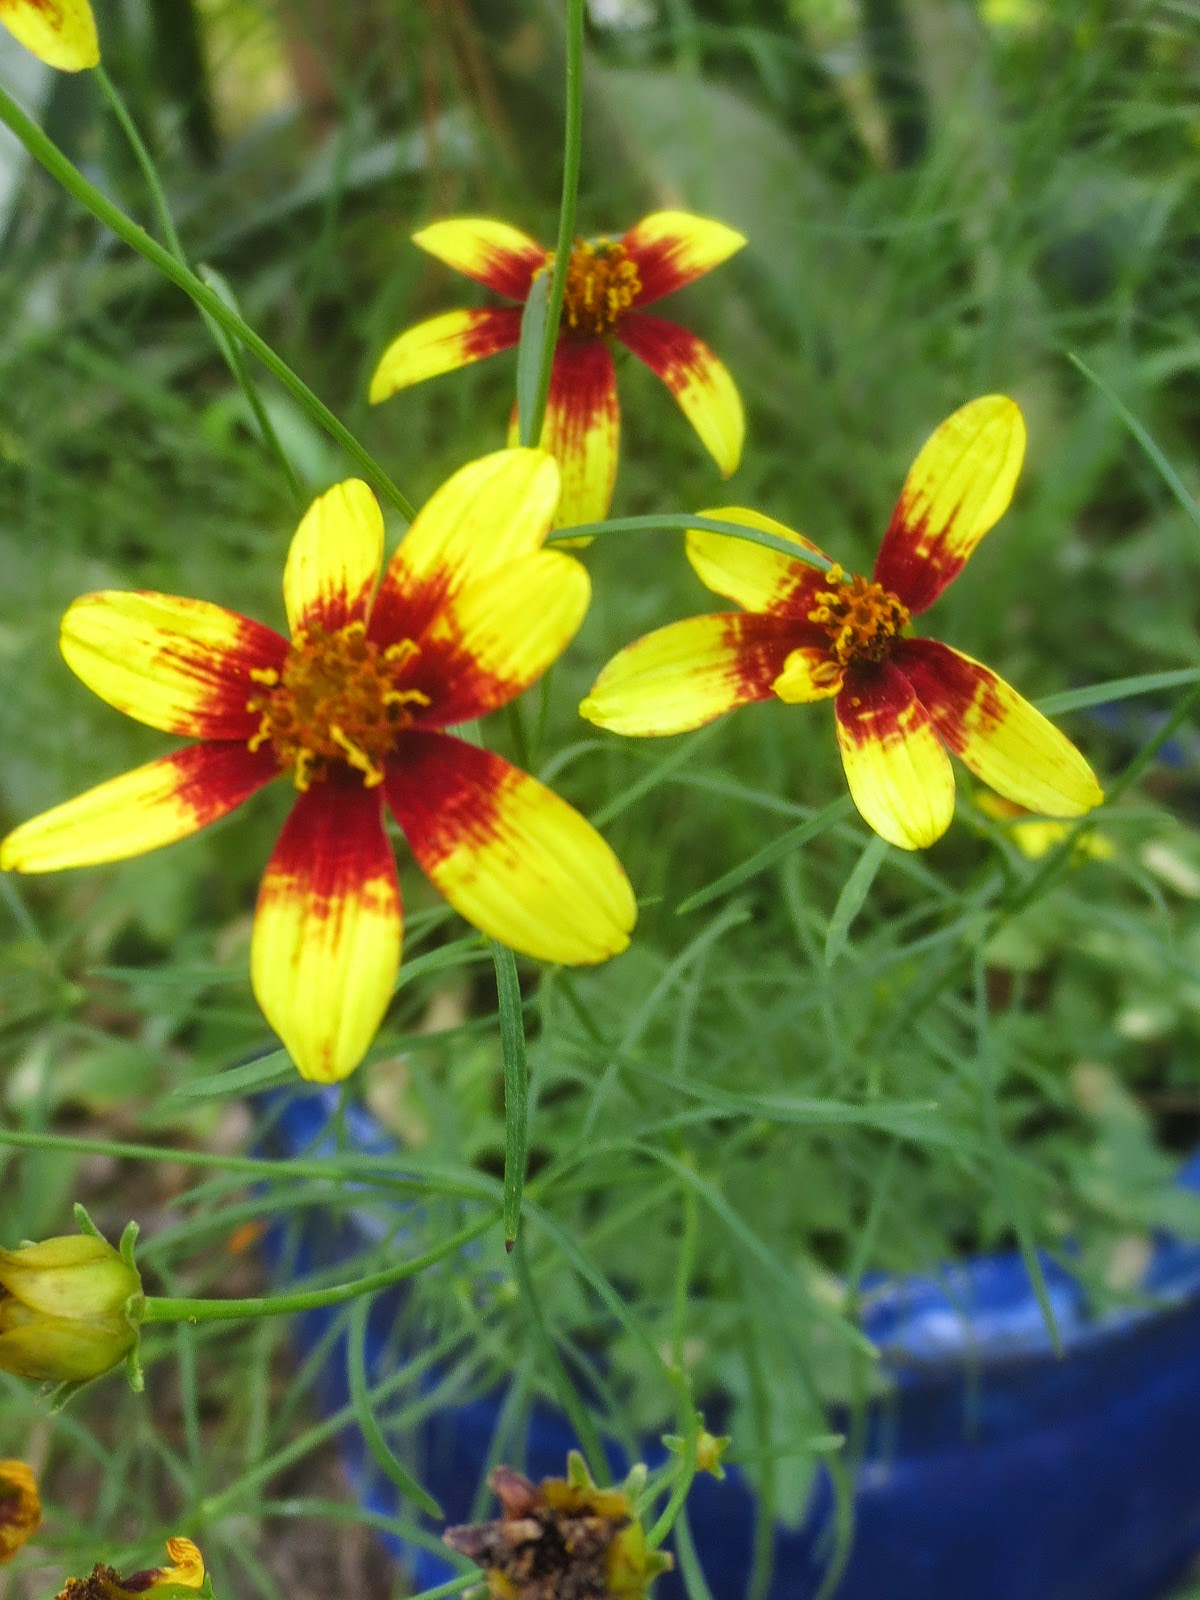 This Is Now My Third Season With Coreopsis Route 66 It Came Back From The Roots Time